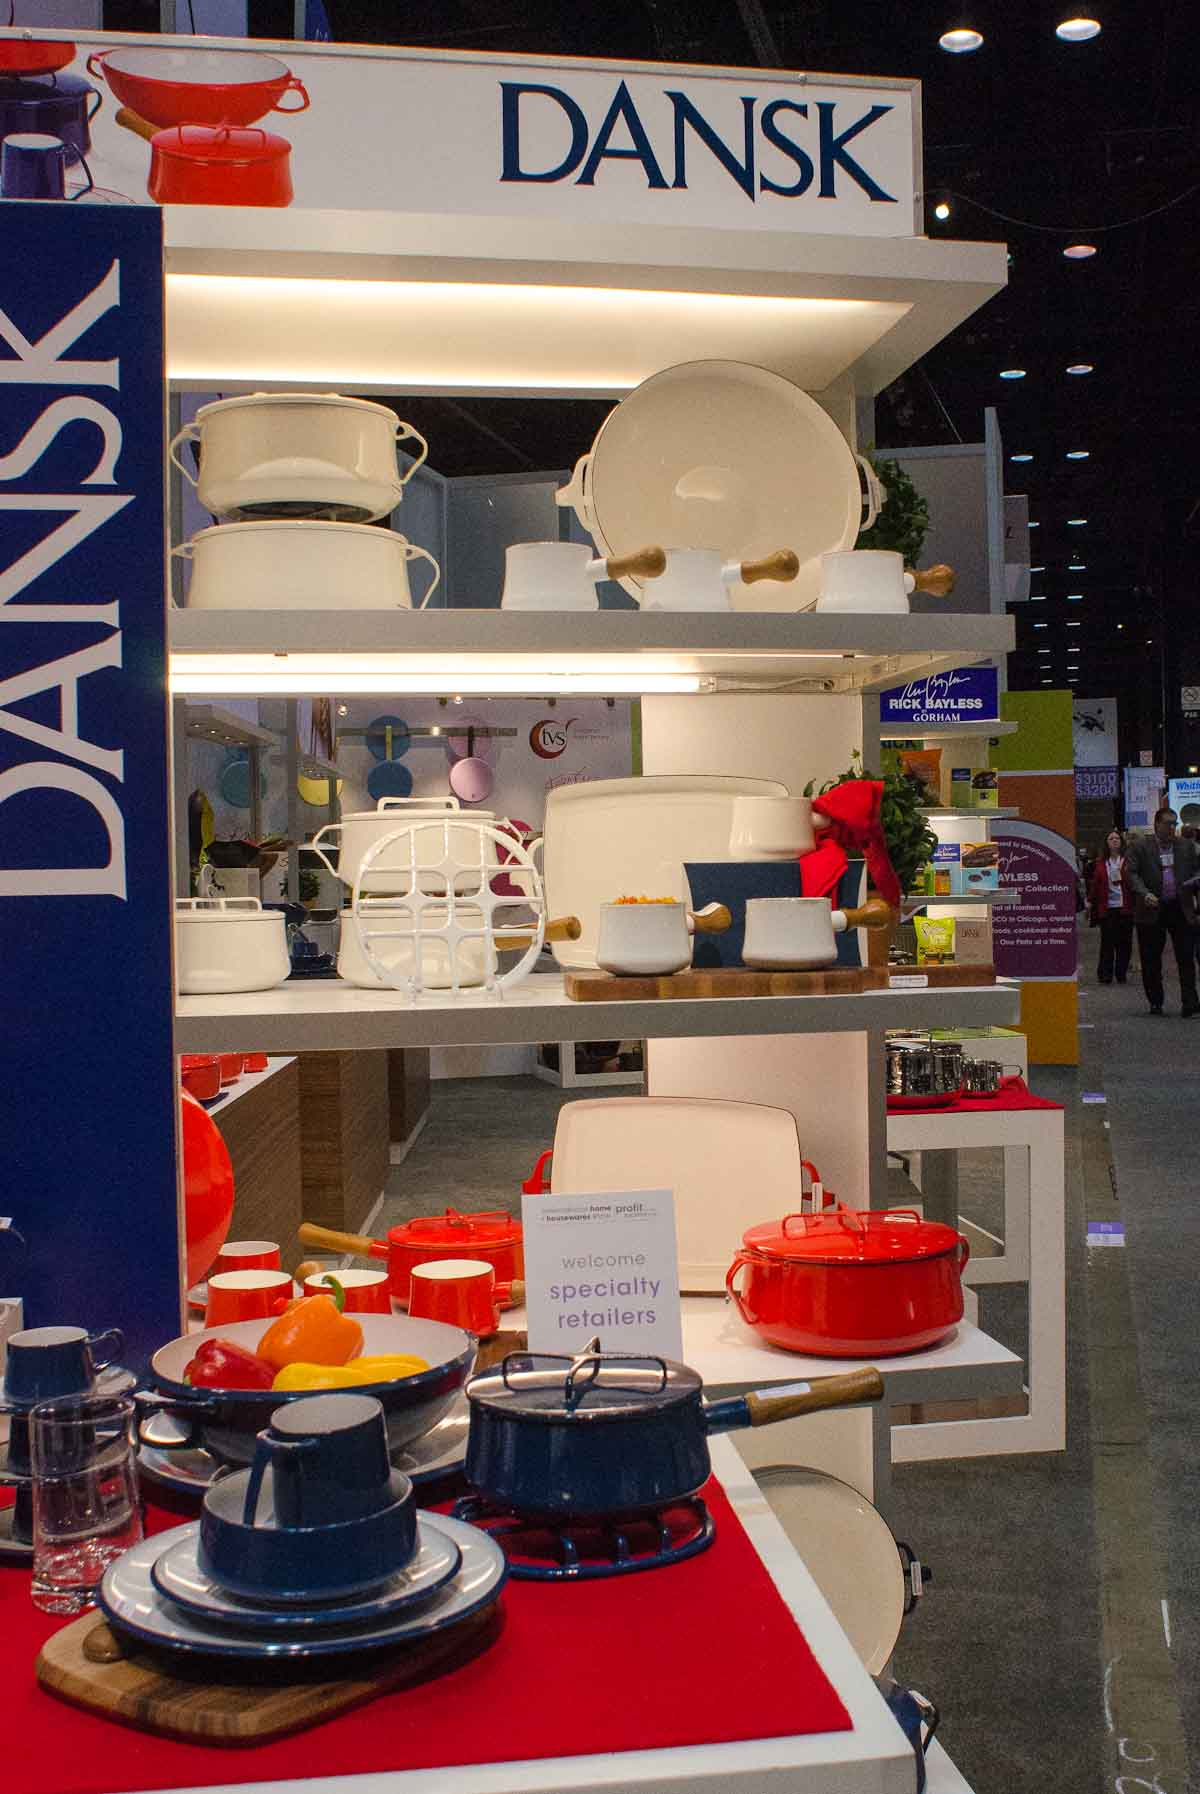 New Colors And Teacups For Reissued Dansk Kobenstyle Cookware Kitchn